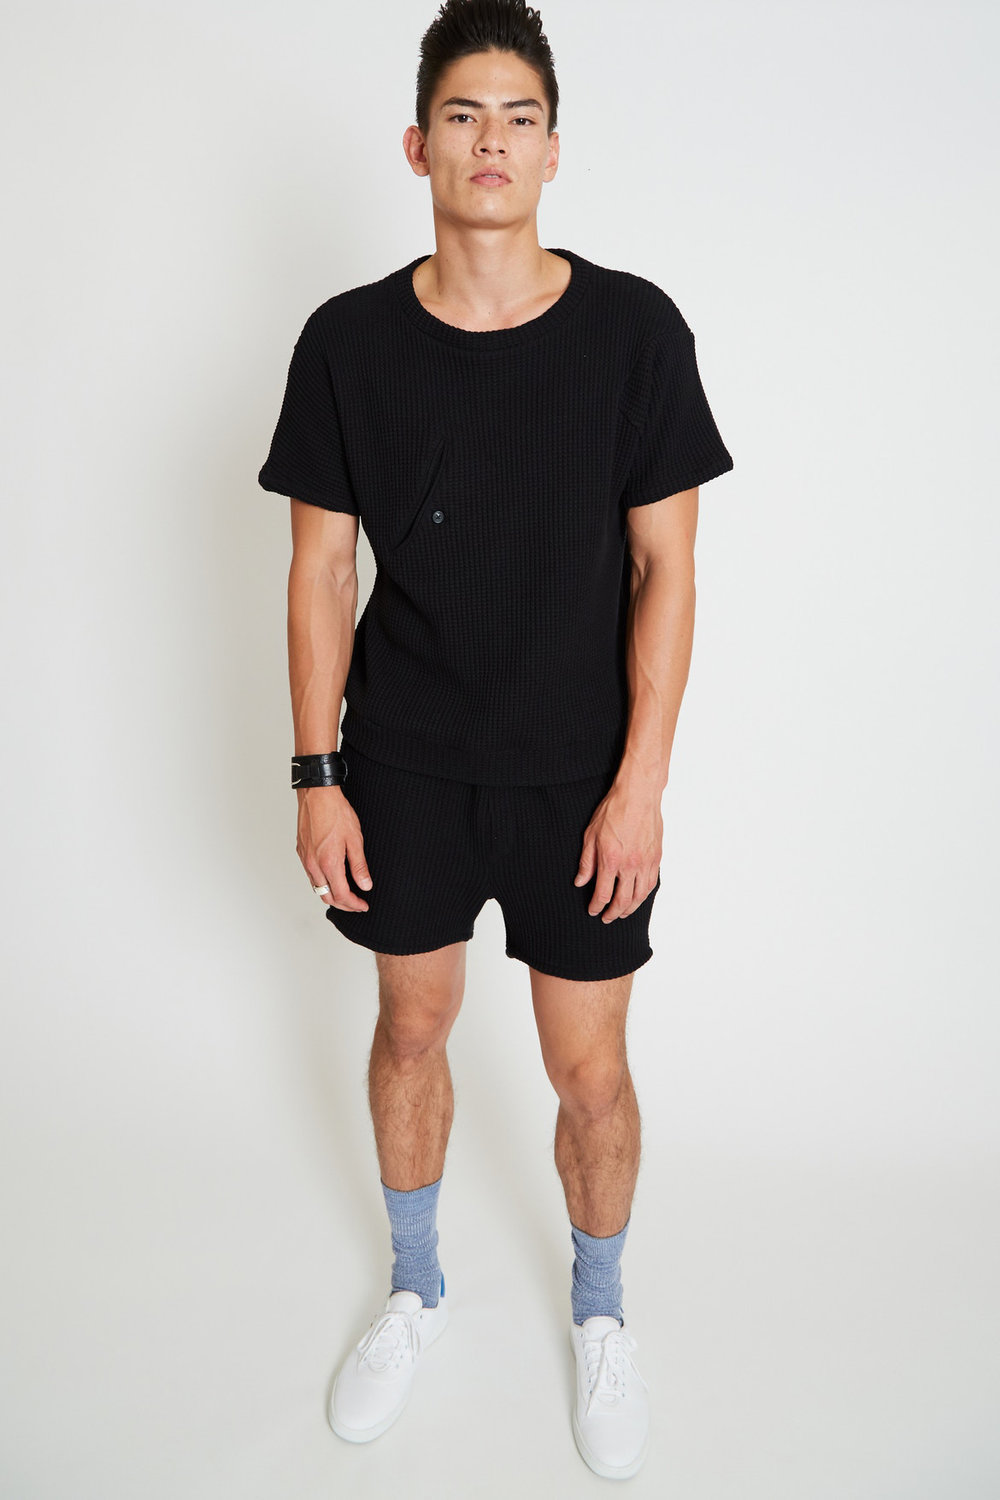 http---hypebeast.com-image-2017-07-death-to-tennis-2018-spring-summer-collection-18.jpg